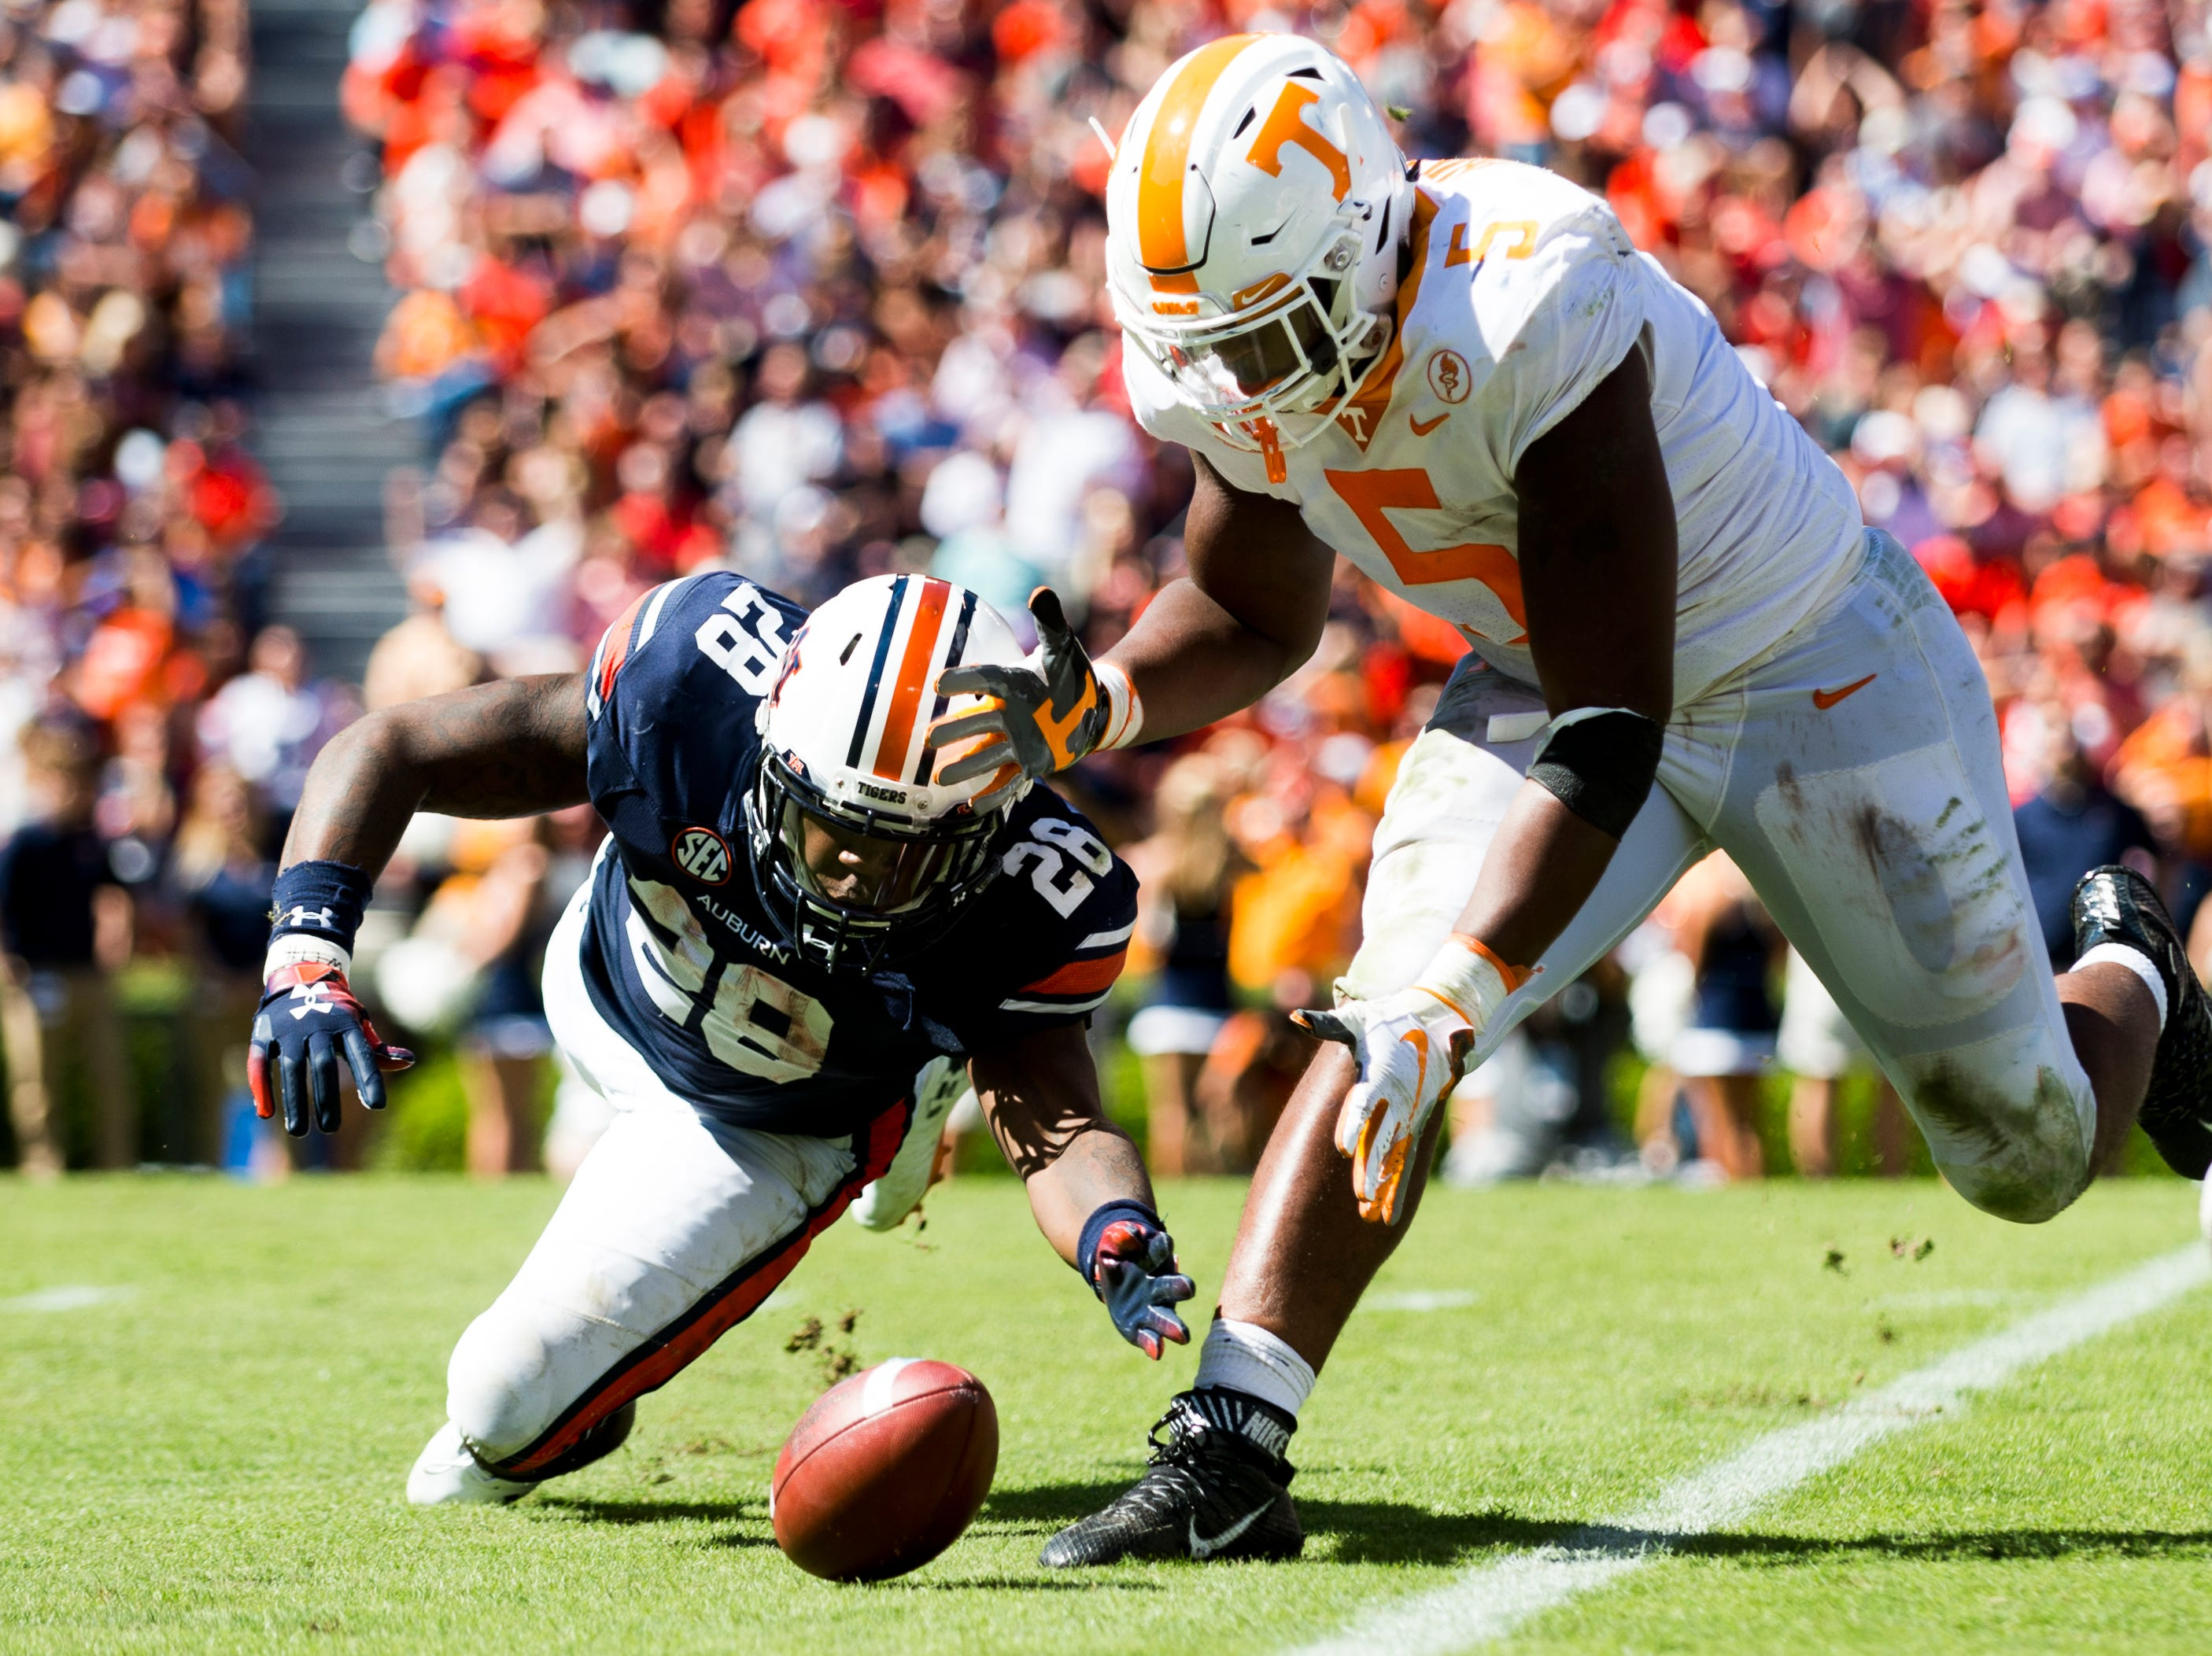 Auburn running back JaTarvious Whitlow (28) and Tennessee defensive lineman Kyle Phillips (5) chase after a fumble during a game between Tennessee and Auburn at Jordan-Hare Stadium in Auburn, Alabama on Saturday, October 13, 2018.